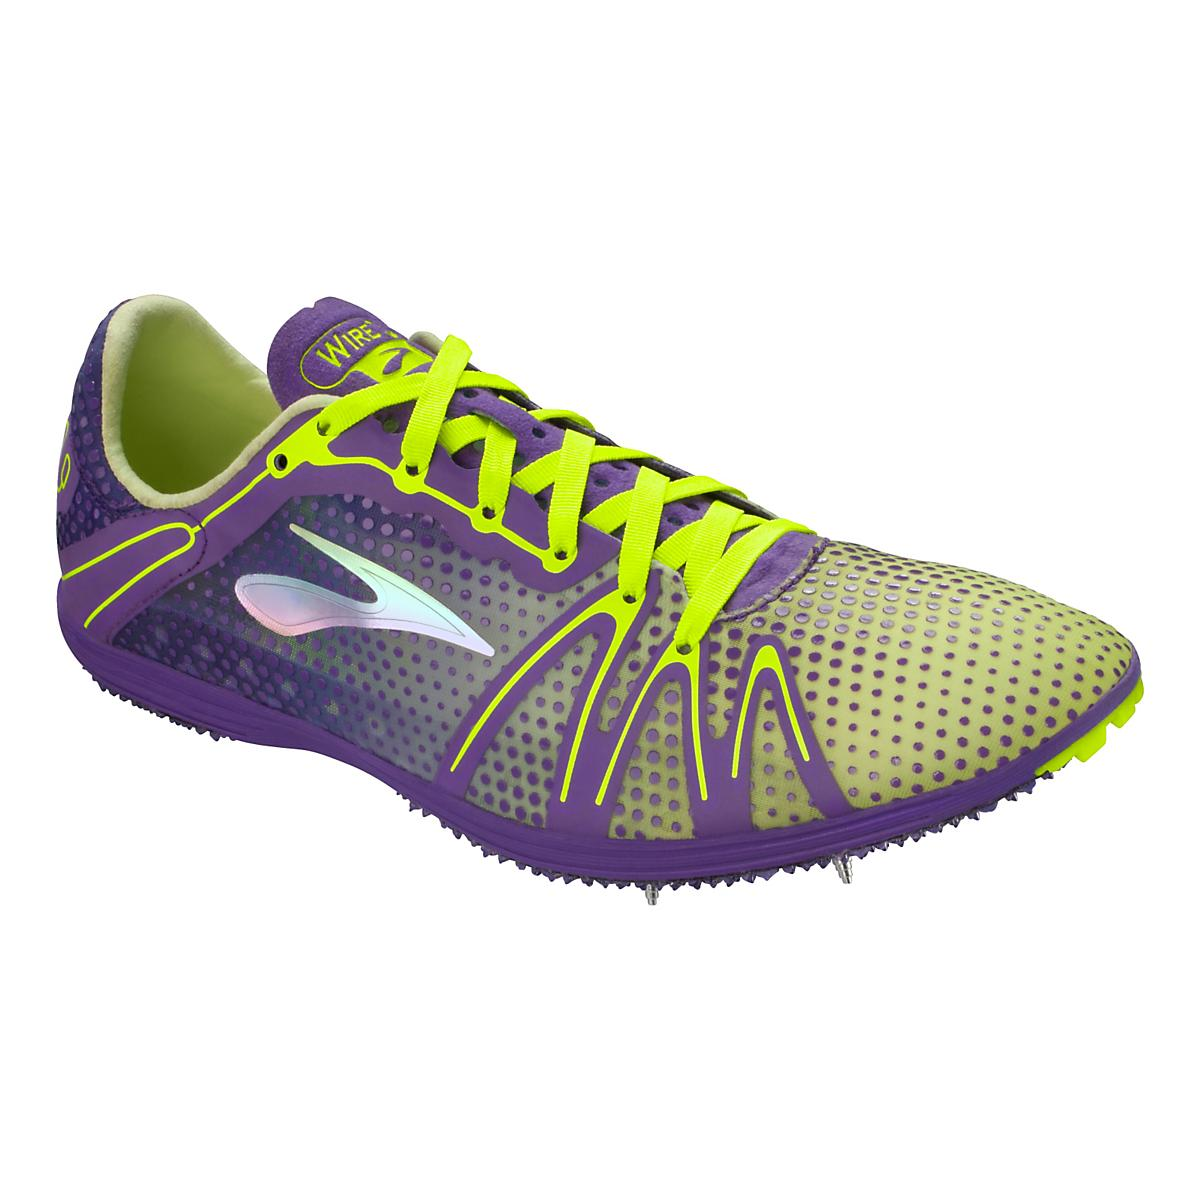 5127d2a4e3ce2 Brooks The Wire 3 Track and Field Shoe at Road Runner Sports